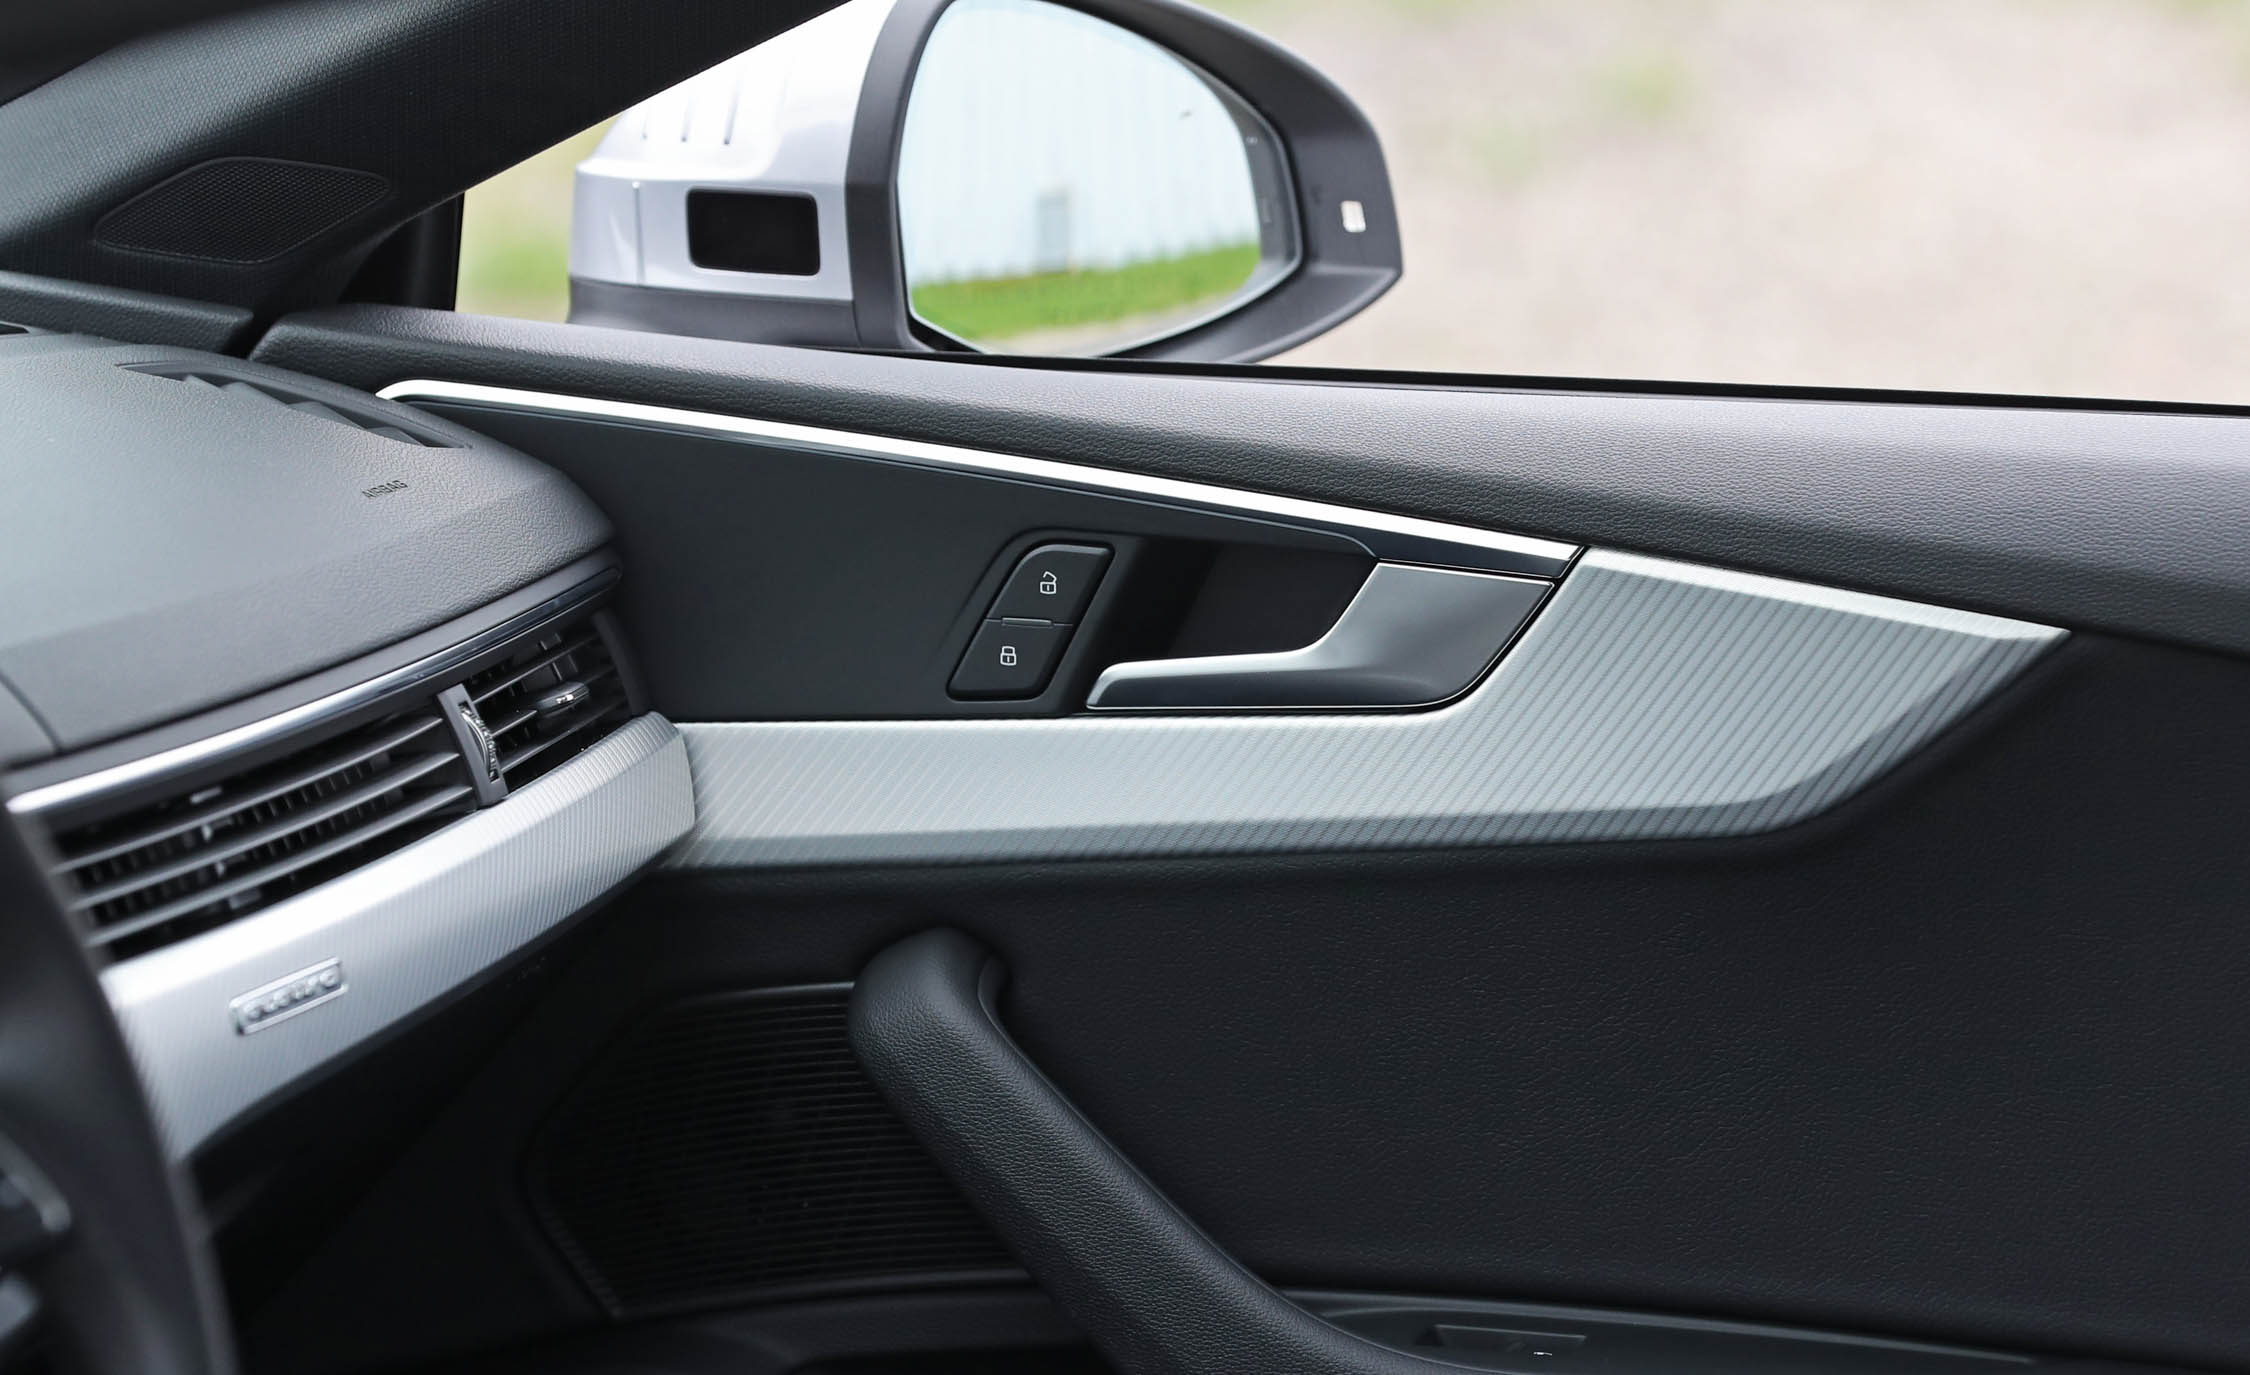 2018 Audi A5 Coupe Interior View Door Panel (Photo 30 of 50)